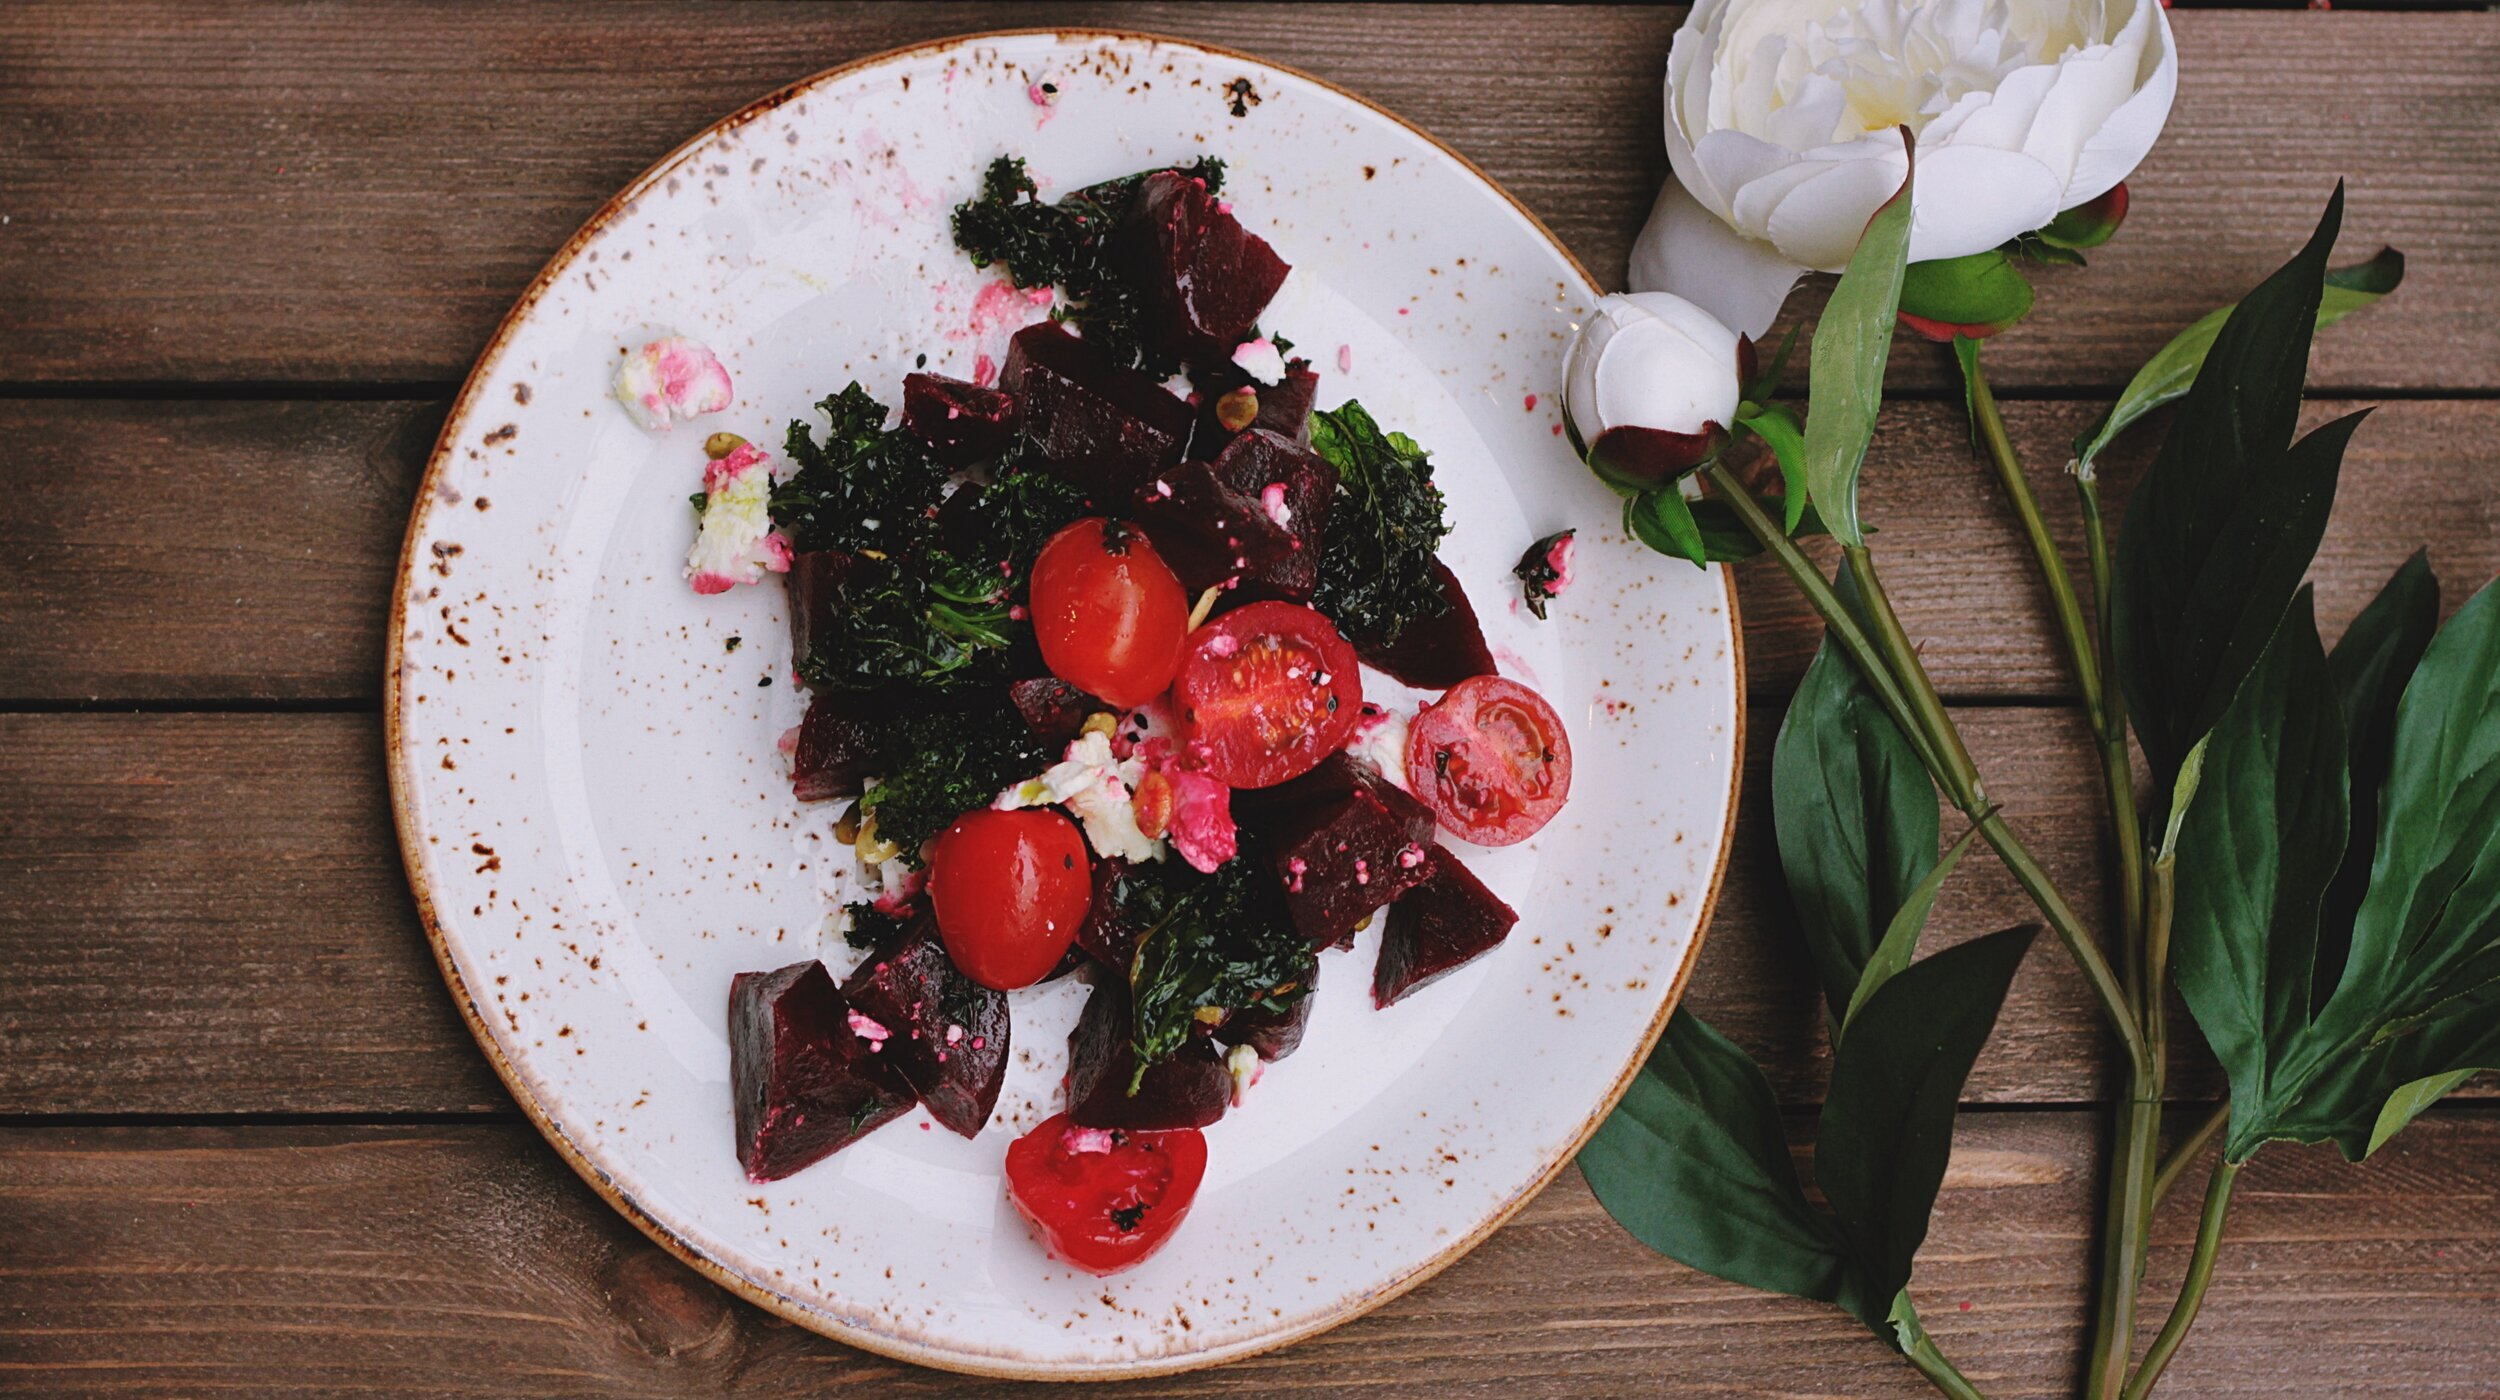 beet salad with white rose